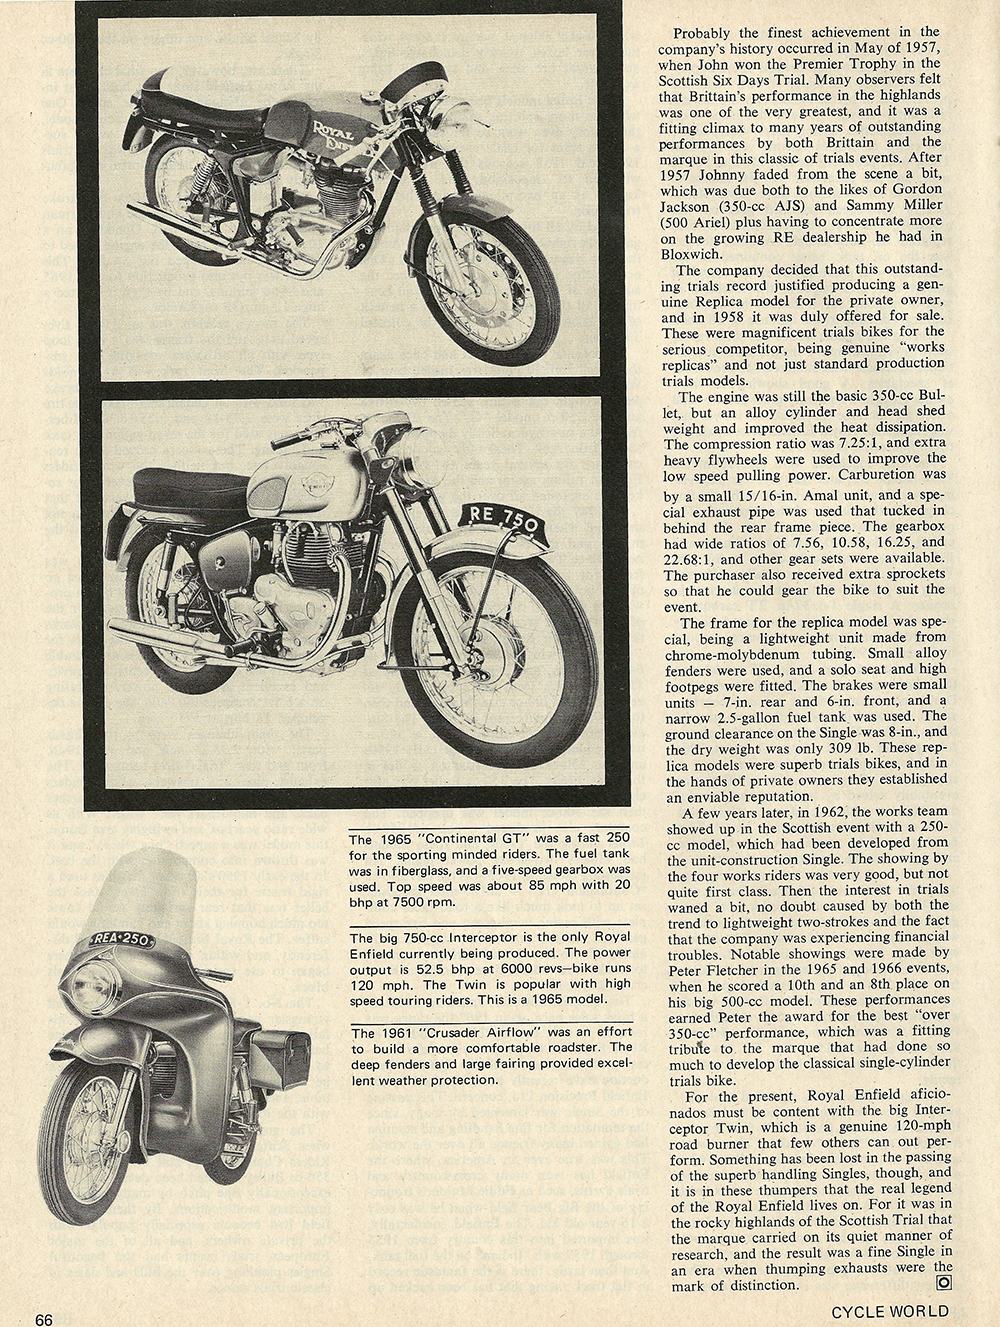 1970 History of Royal Enfield 05.jpg